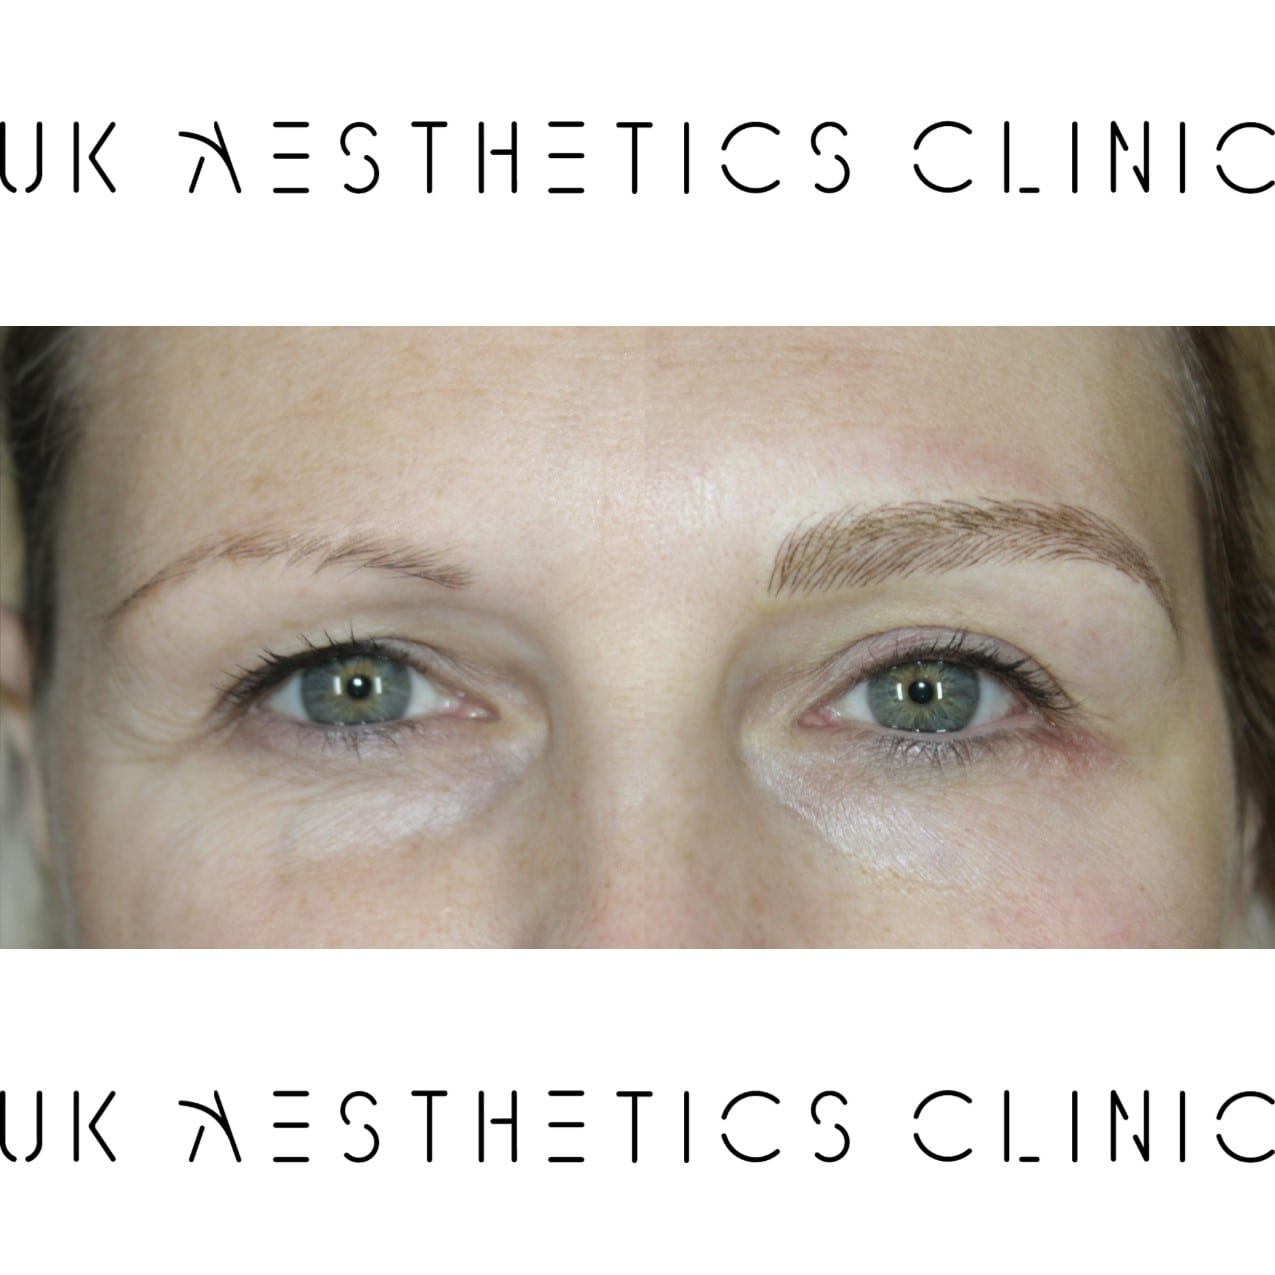 microblading-treatment-uk-aesthetics-clinic-Kelly